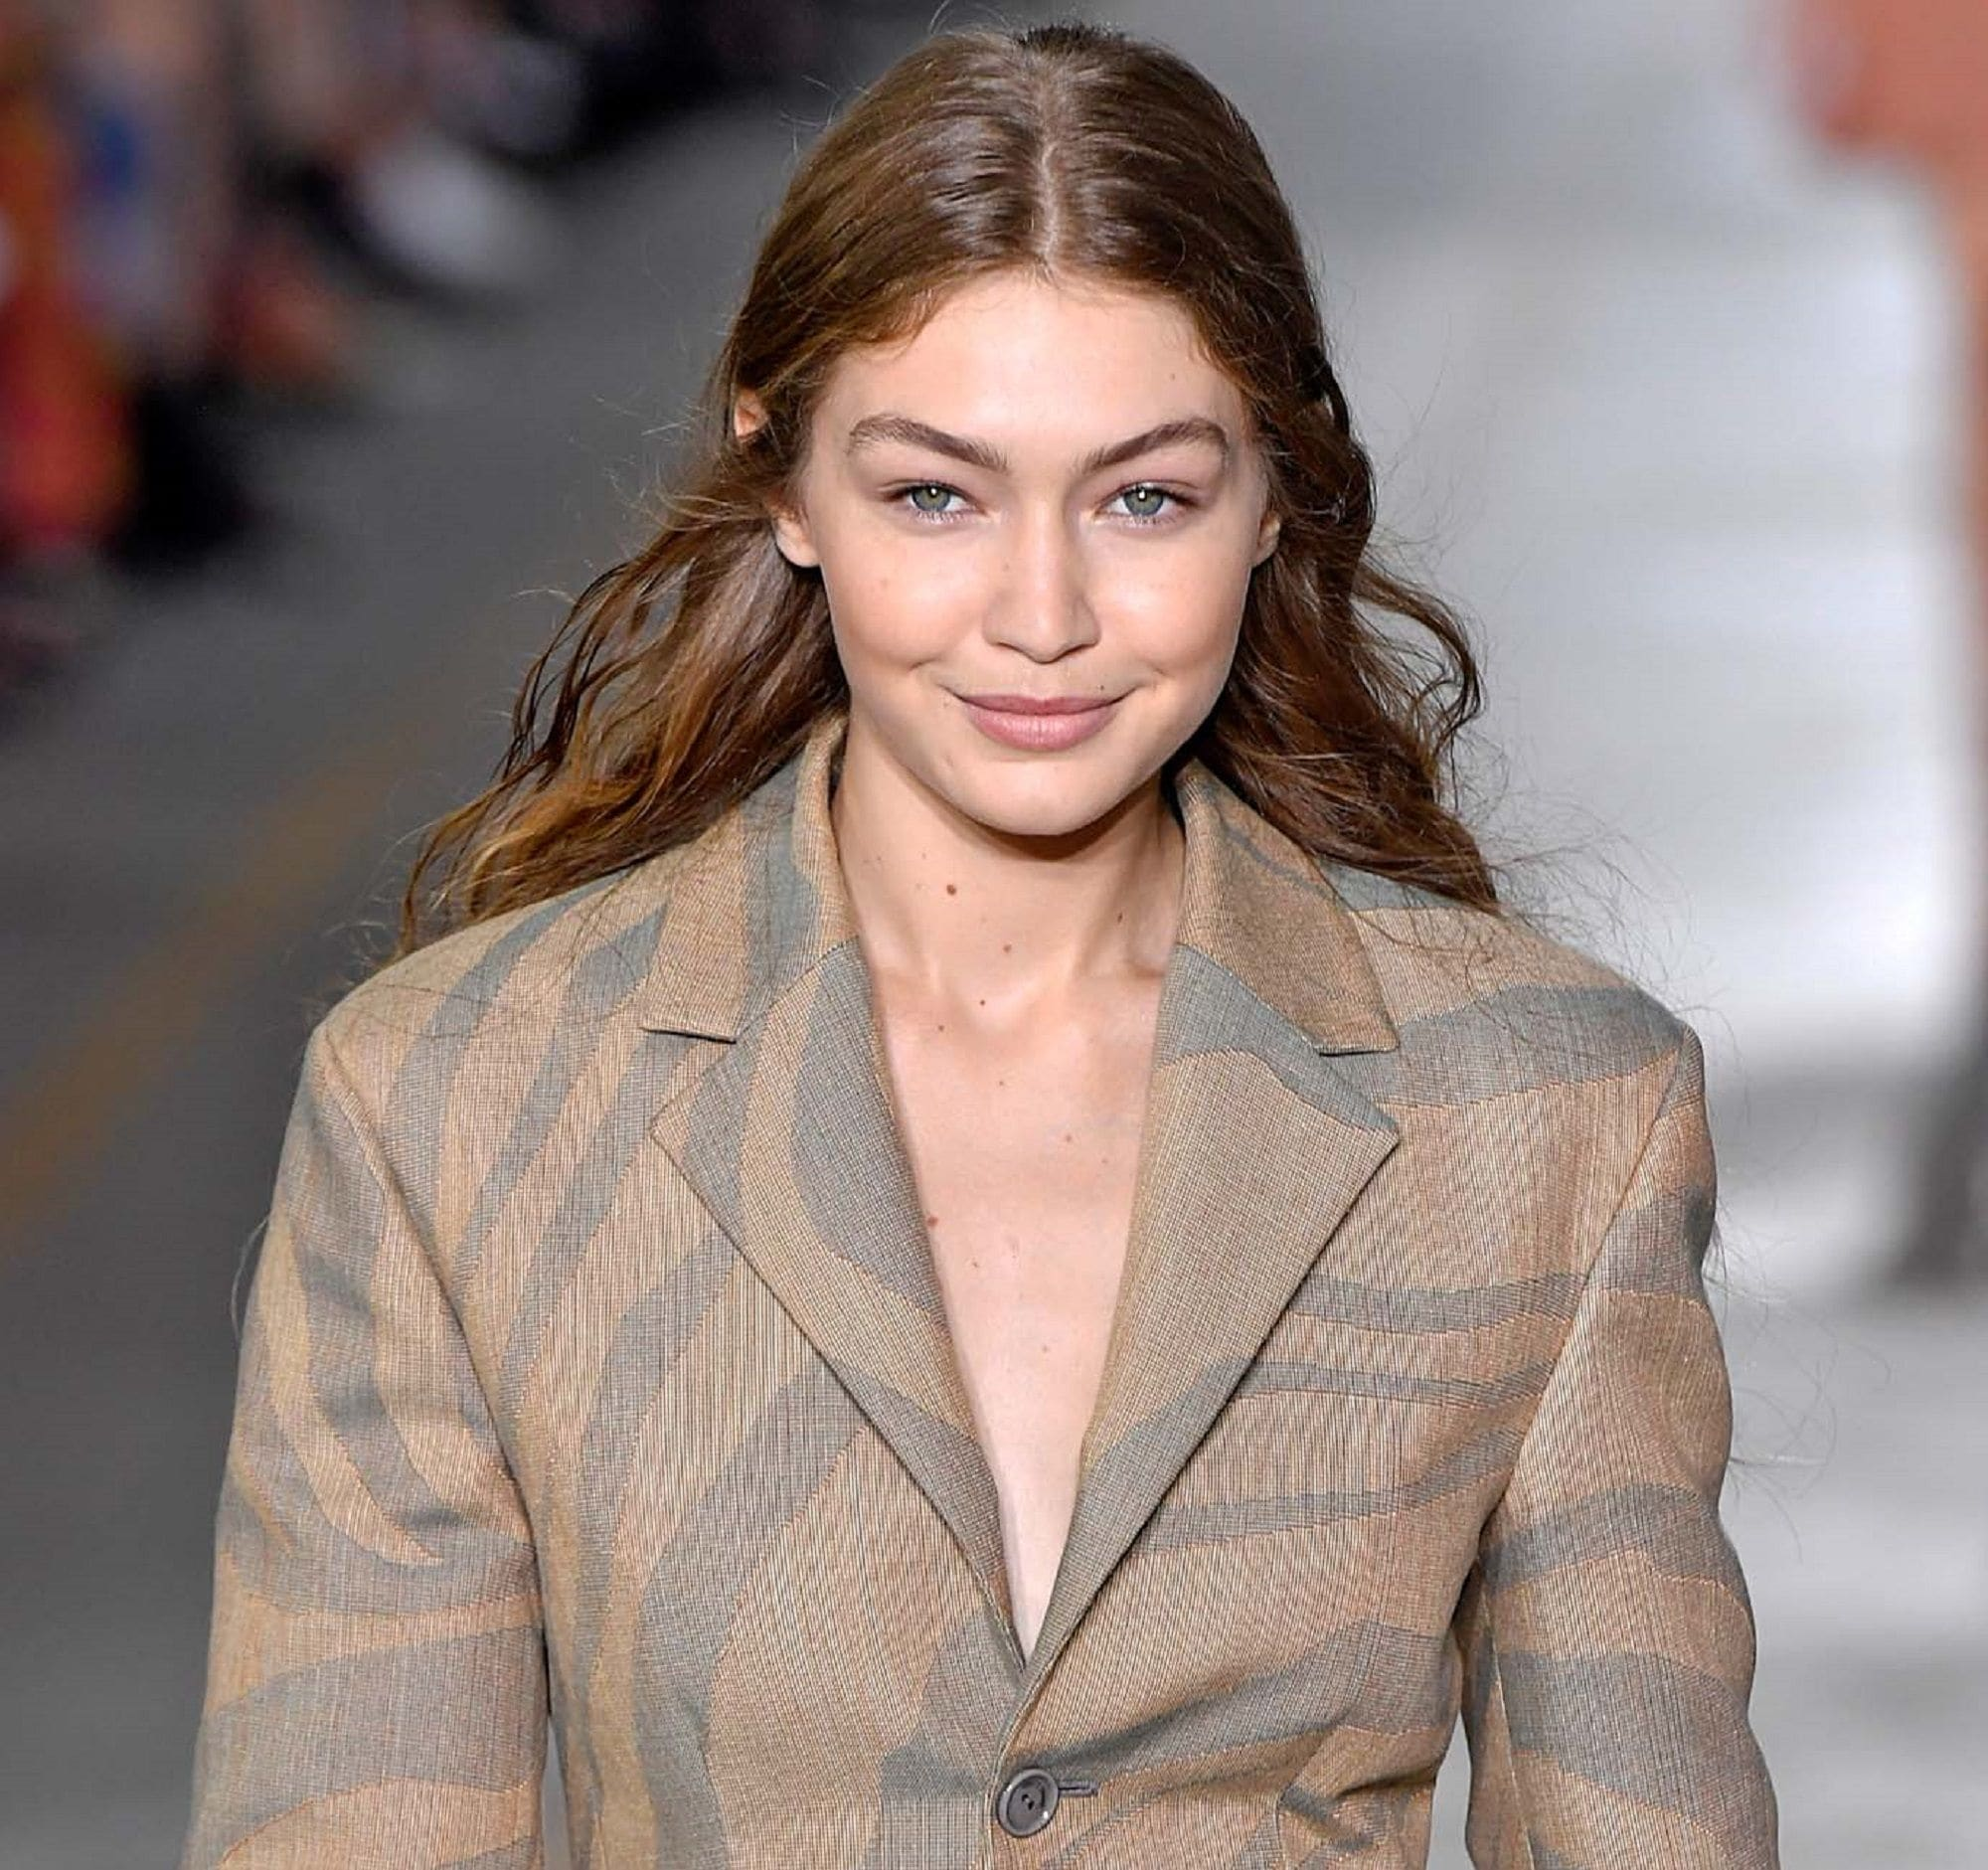 Dark brown hair color: Closeup shot of a woman with long brown hair wearing a light brown coat walking in a fashion show